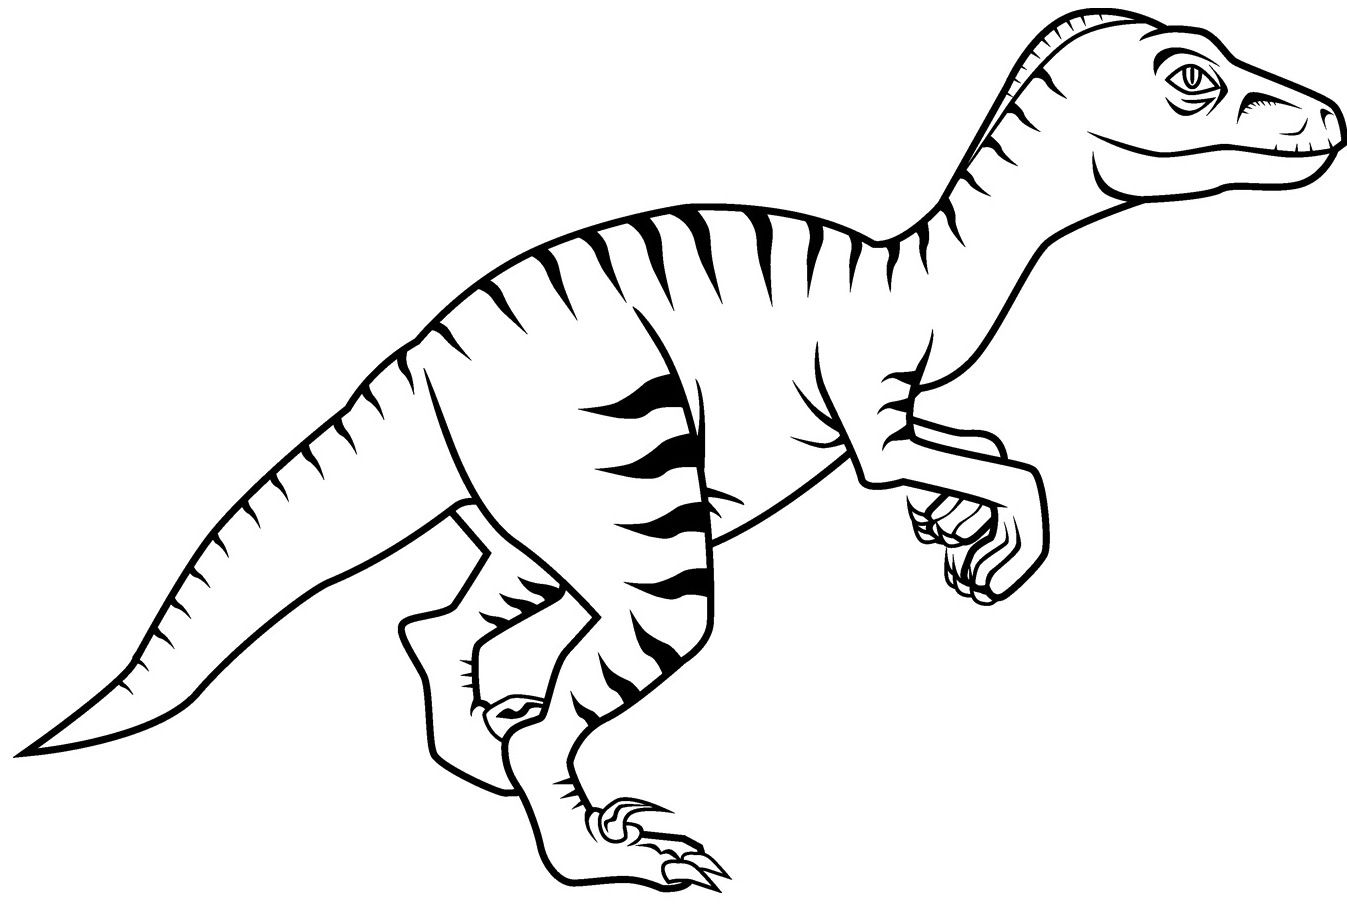 Dinosaur Coloring Pages Image By Coloringsworld On